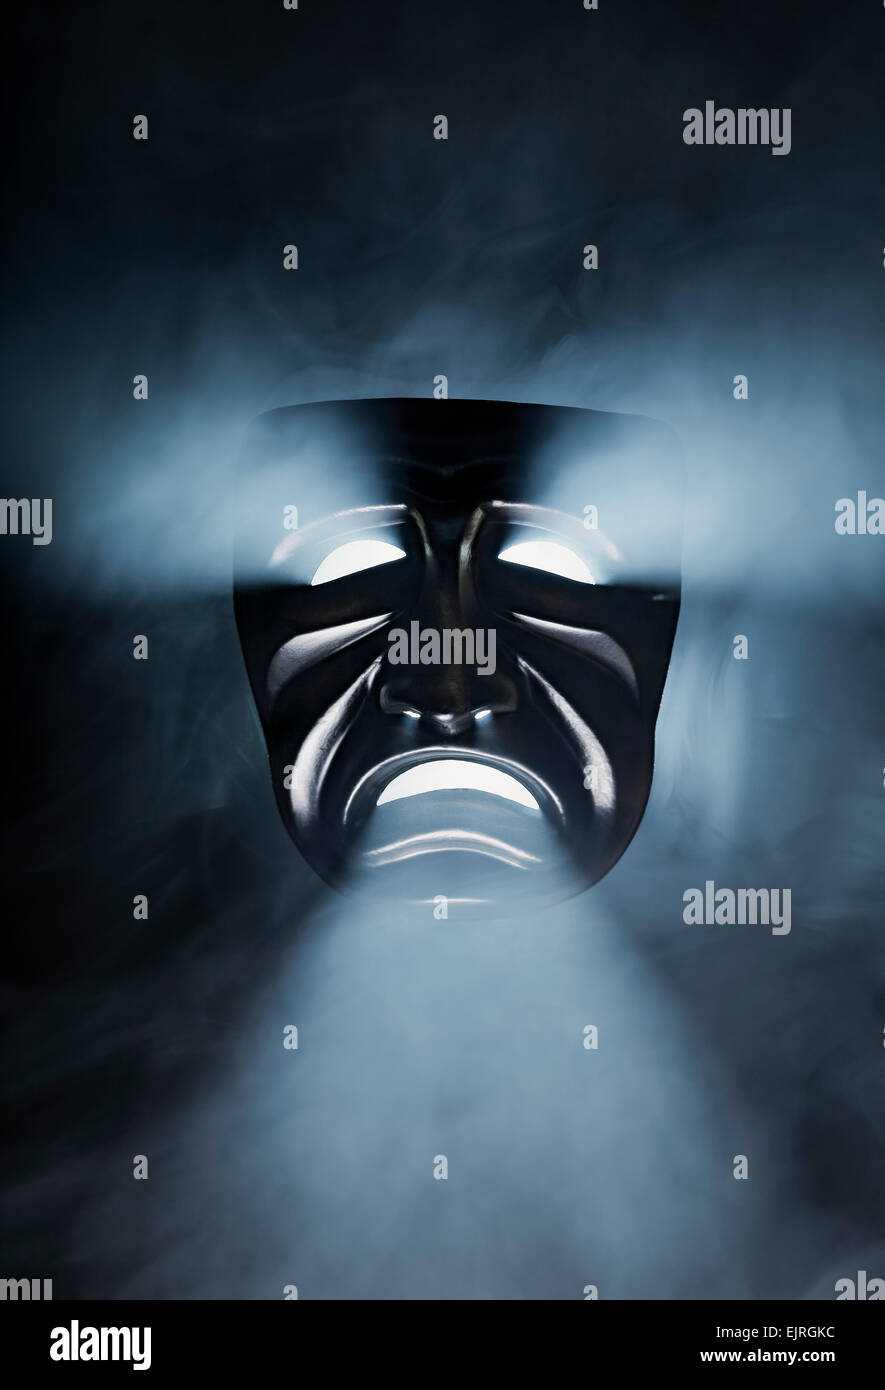 A Black sad mask in smoky back light. - Stock Image